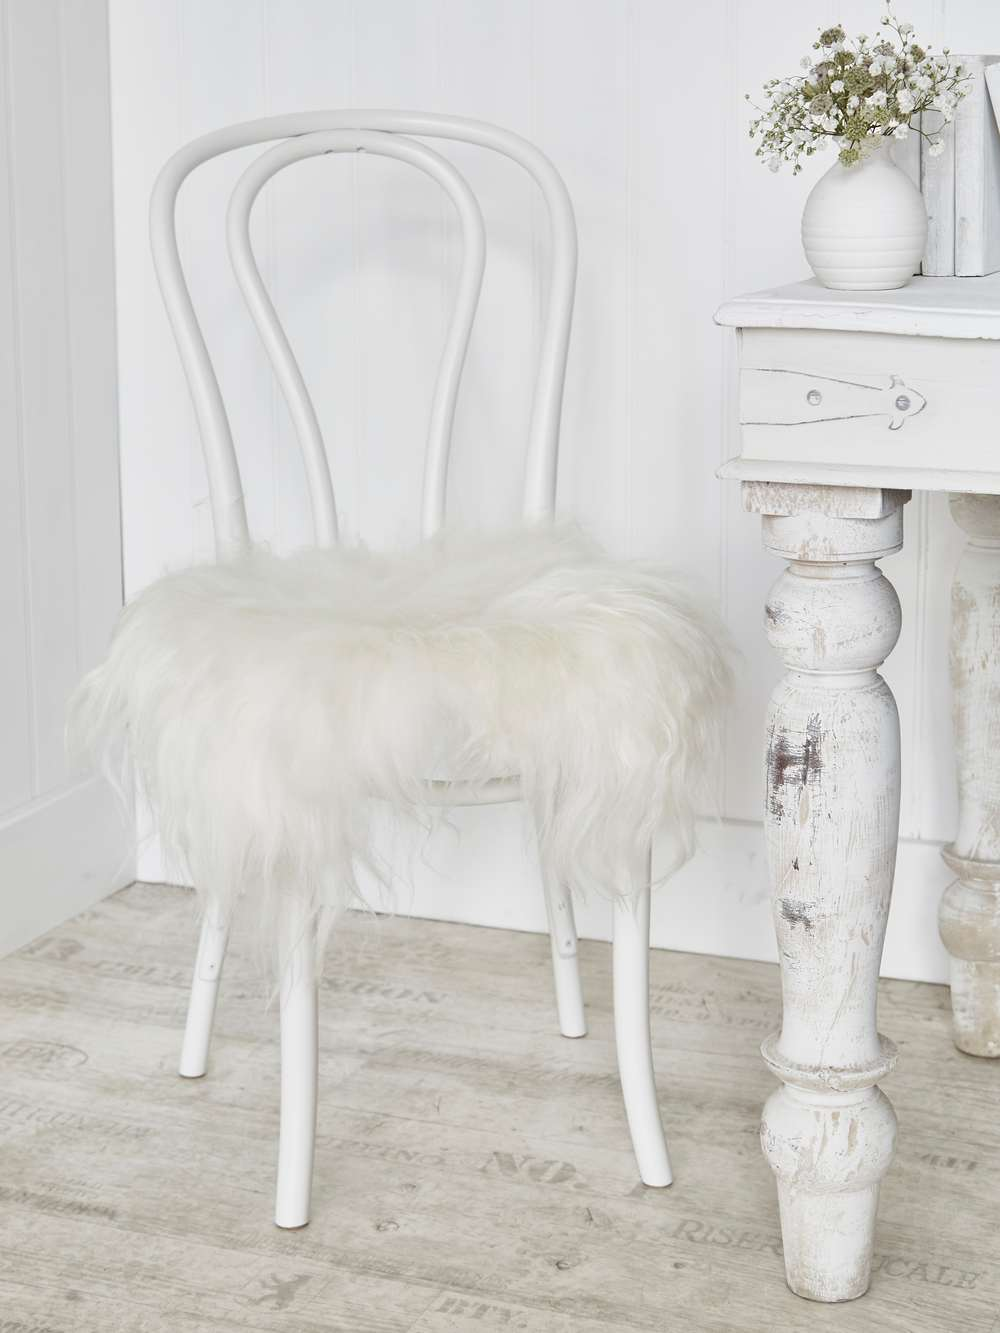 christmas dining chair covers uk childrens table and chairs wooden icelandic sheepskin seat cover - off white